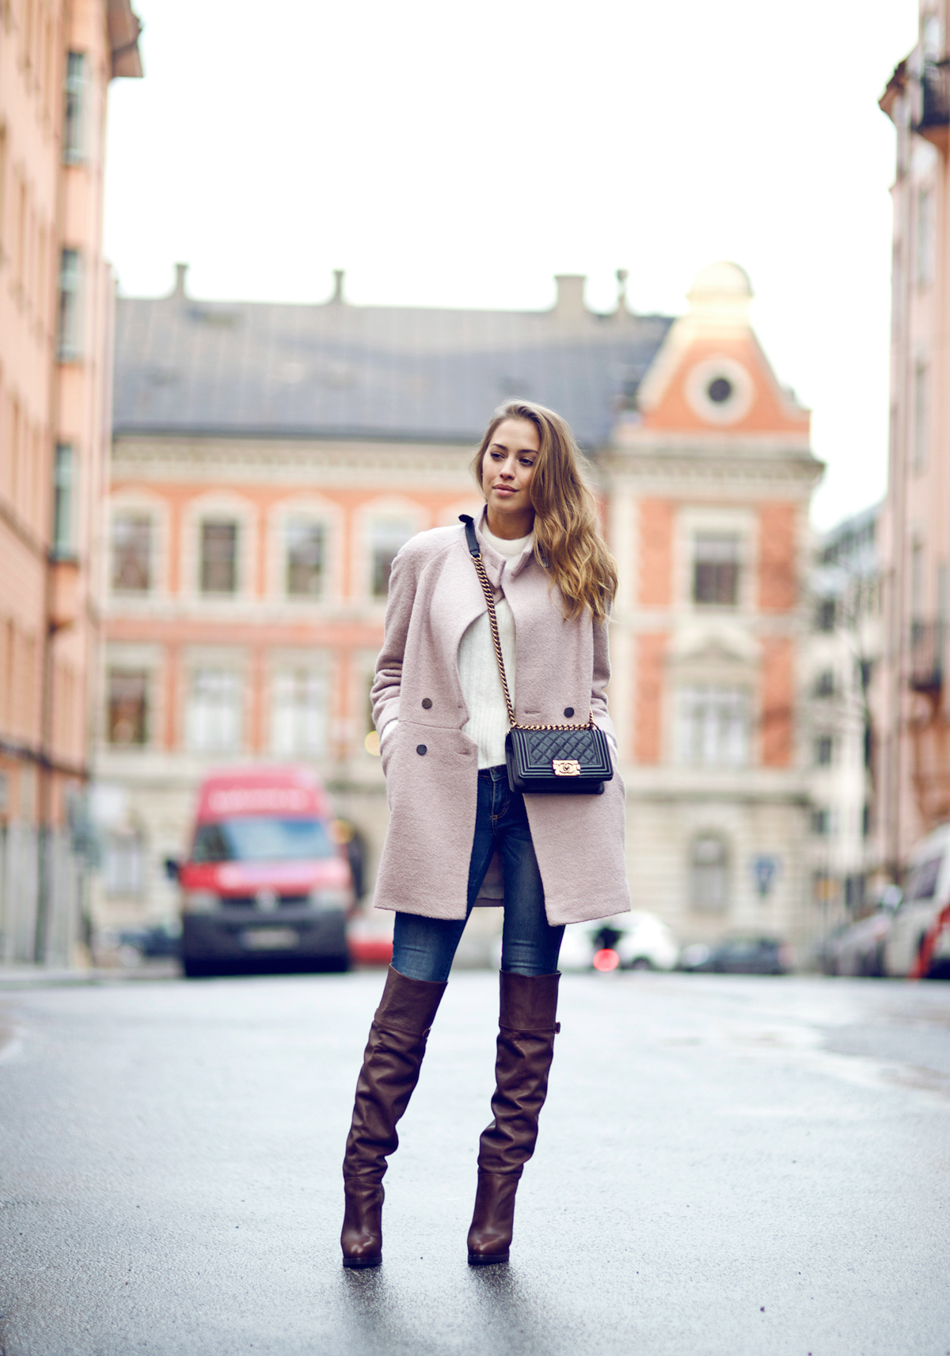 Kenza Zouiten is wearing brown above the knee boots from H&M